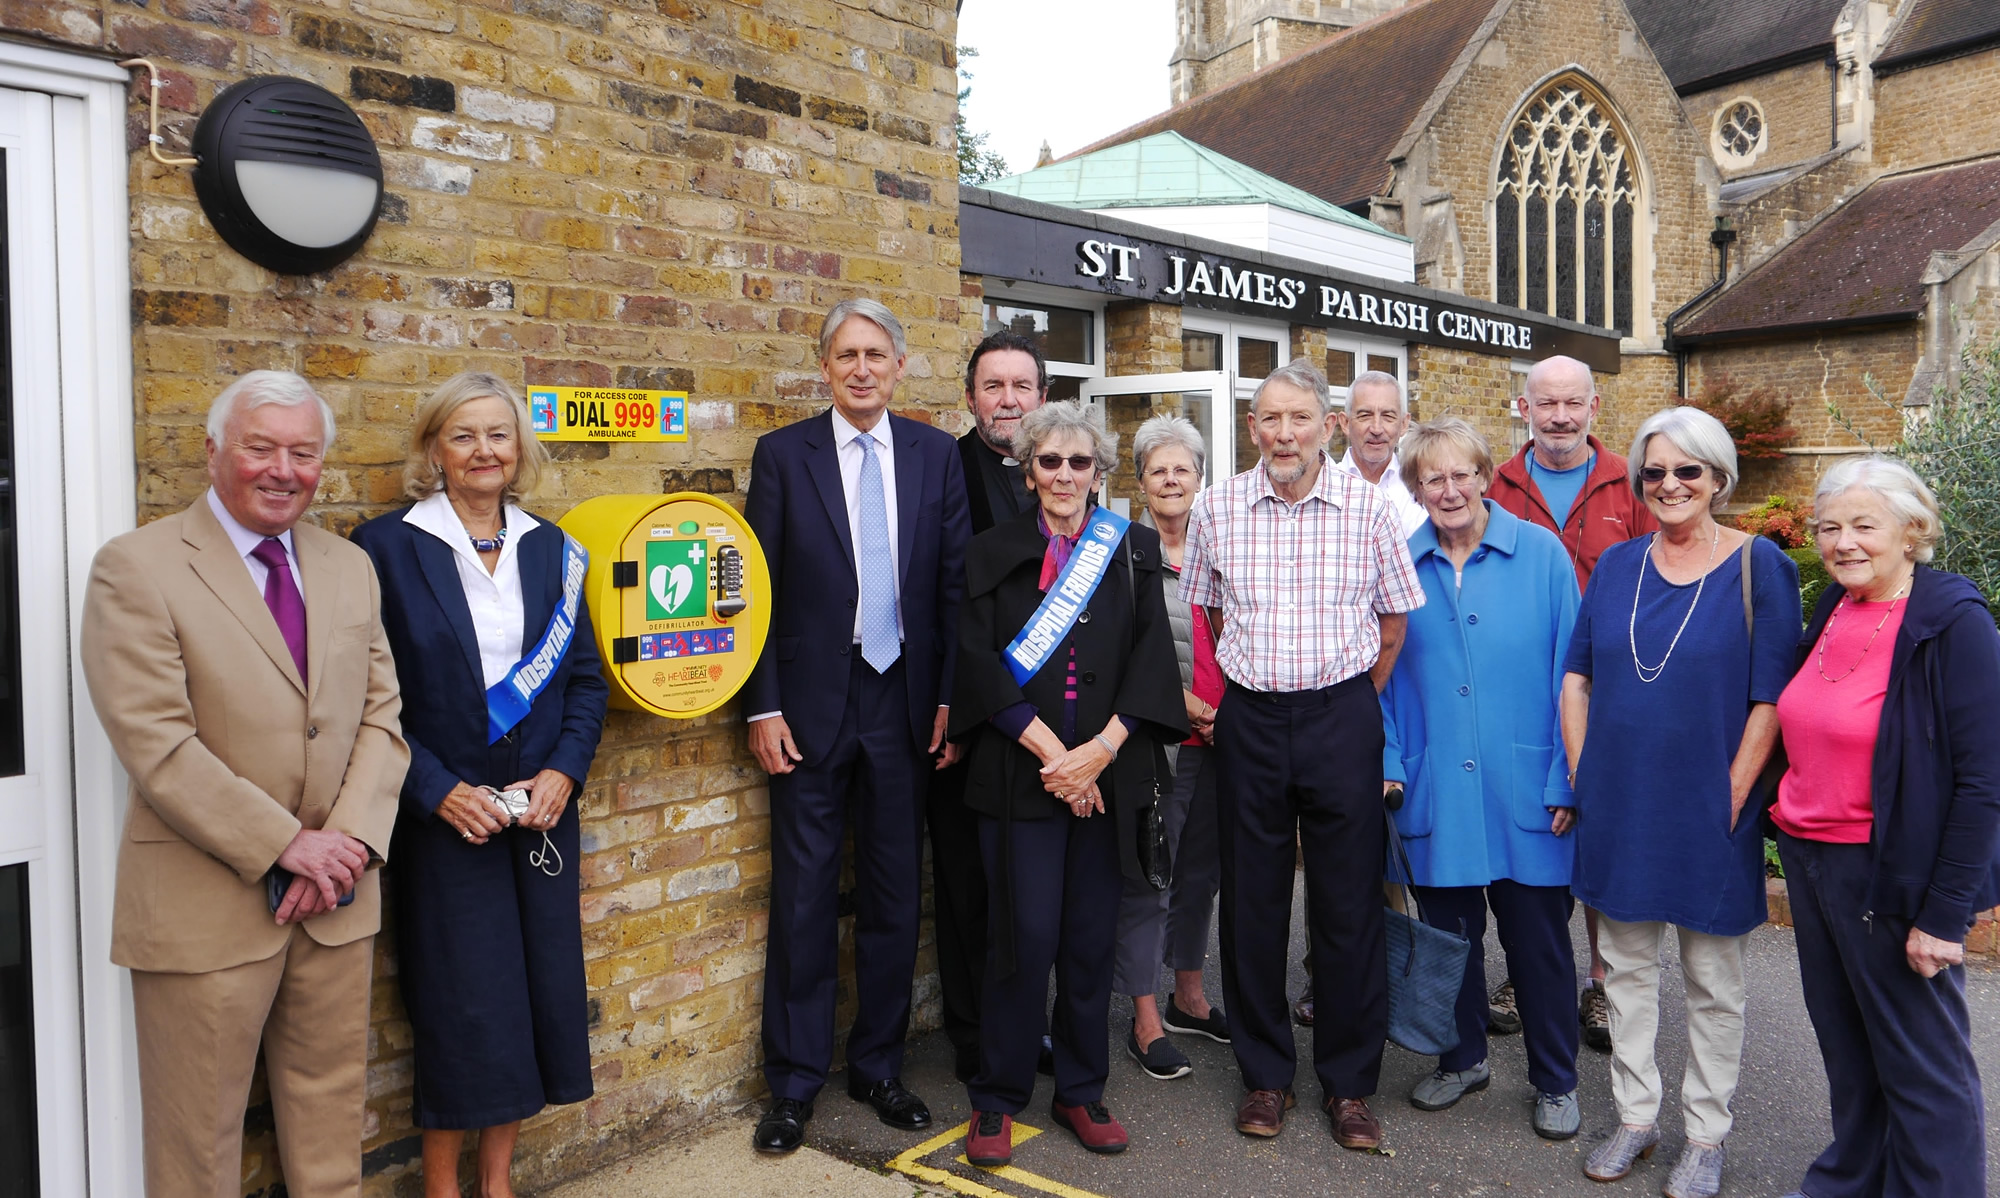 Pictured L.to R. are: Keith Wallis, Philippa Holcroft, Rt.Hon.Philip Hammond MP, Rev.Brian Prothero, Jackie Roberts, Jill Wilson, David Brown, Chas Burston, Anne Cotton, Colin Fozard, Margaret Wicks & Alison Lornie.